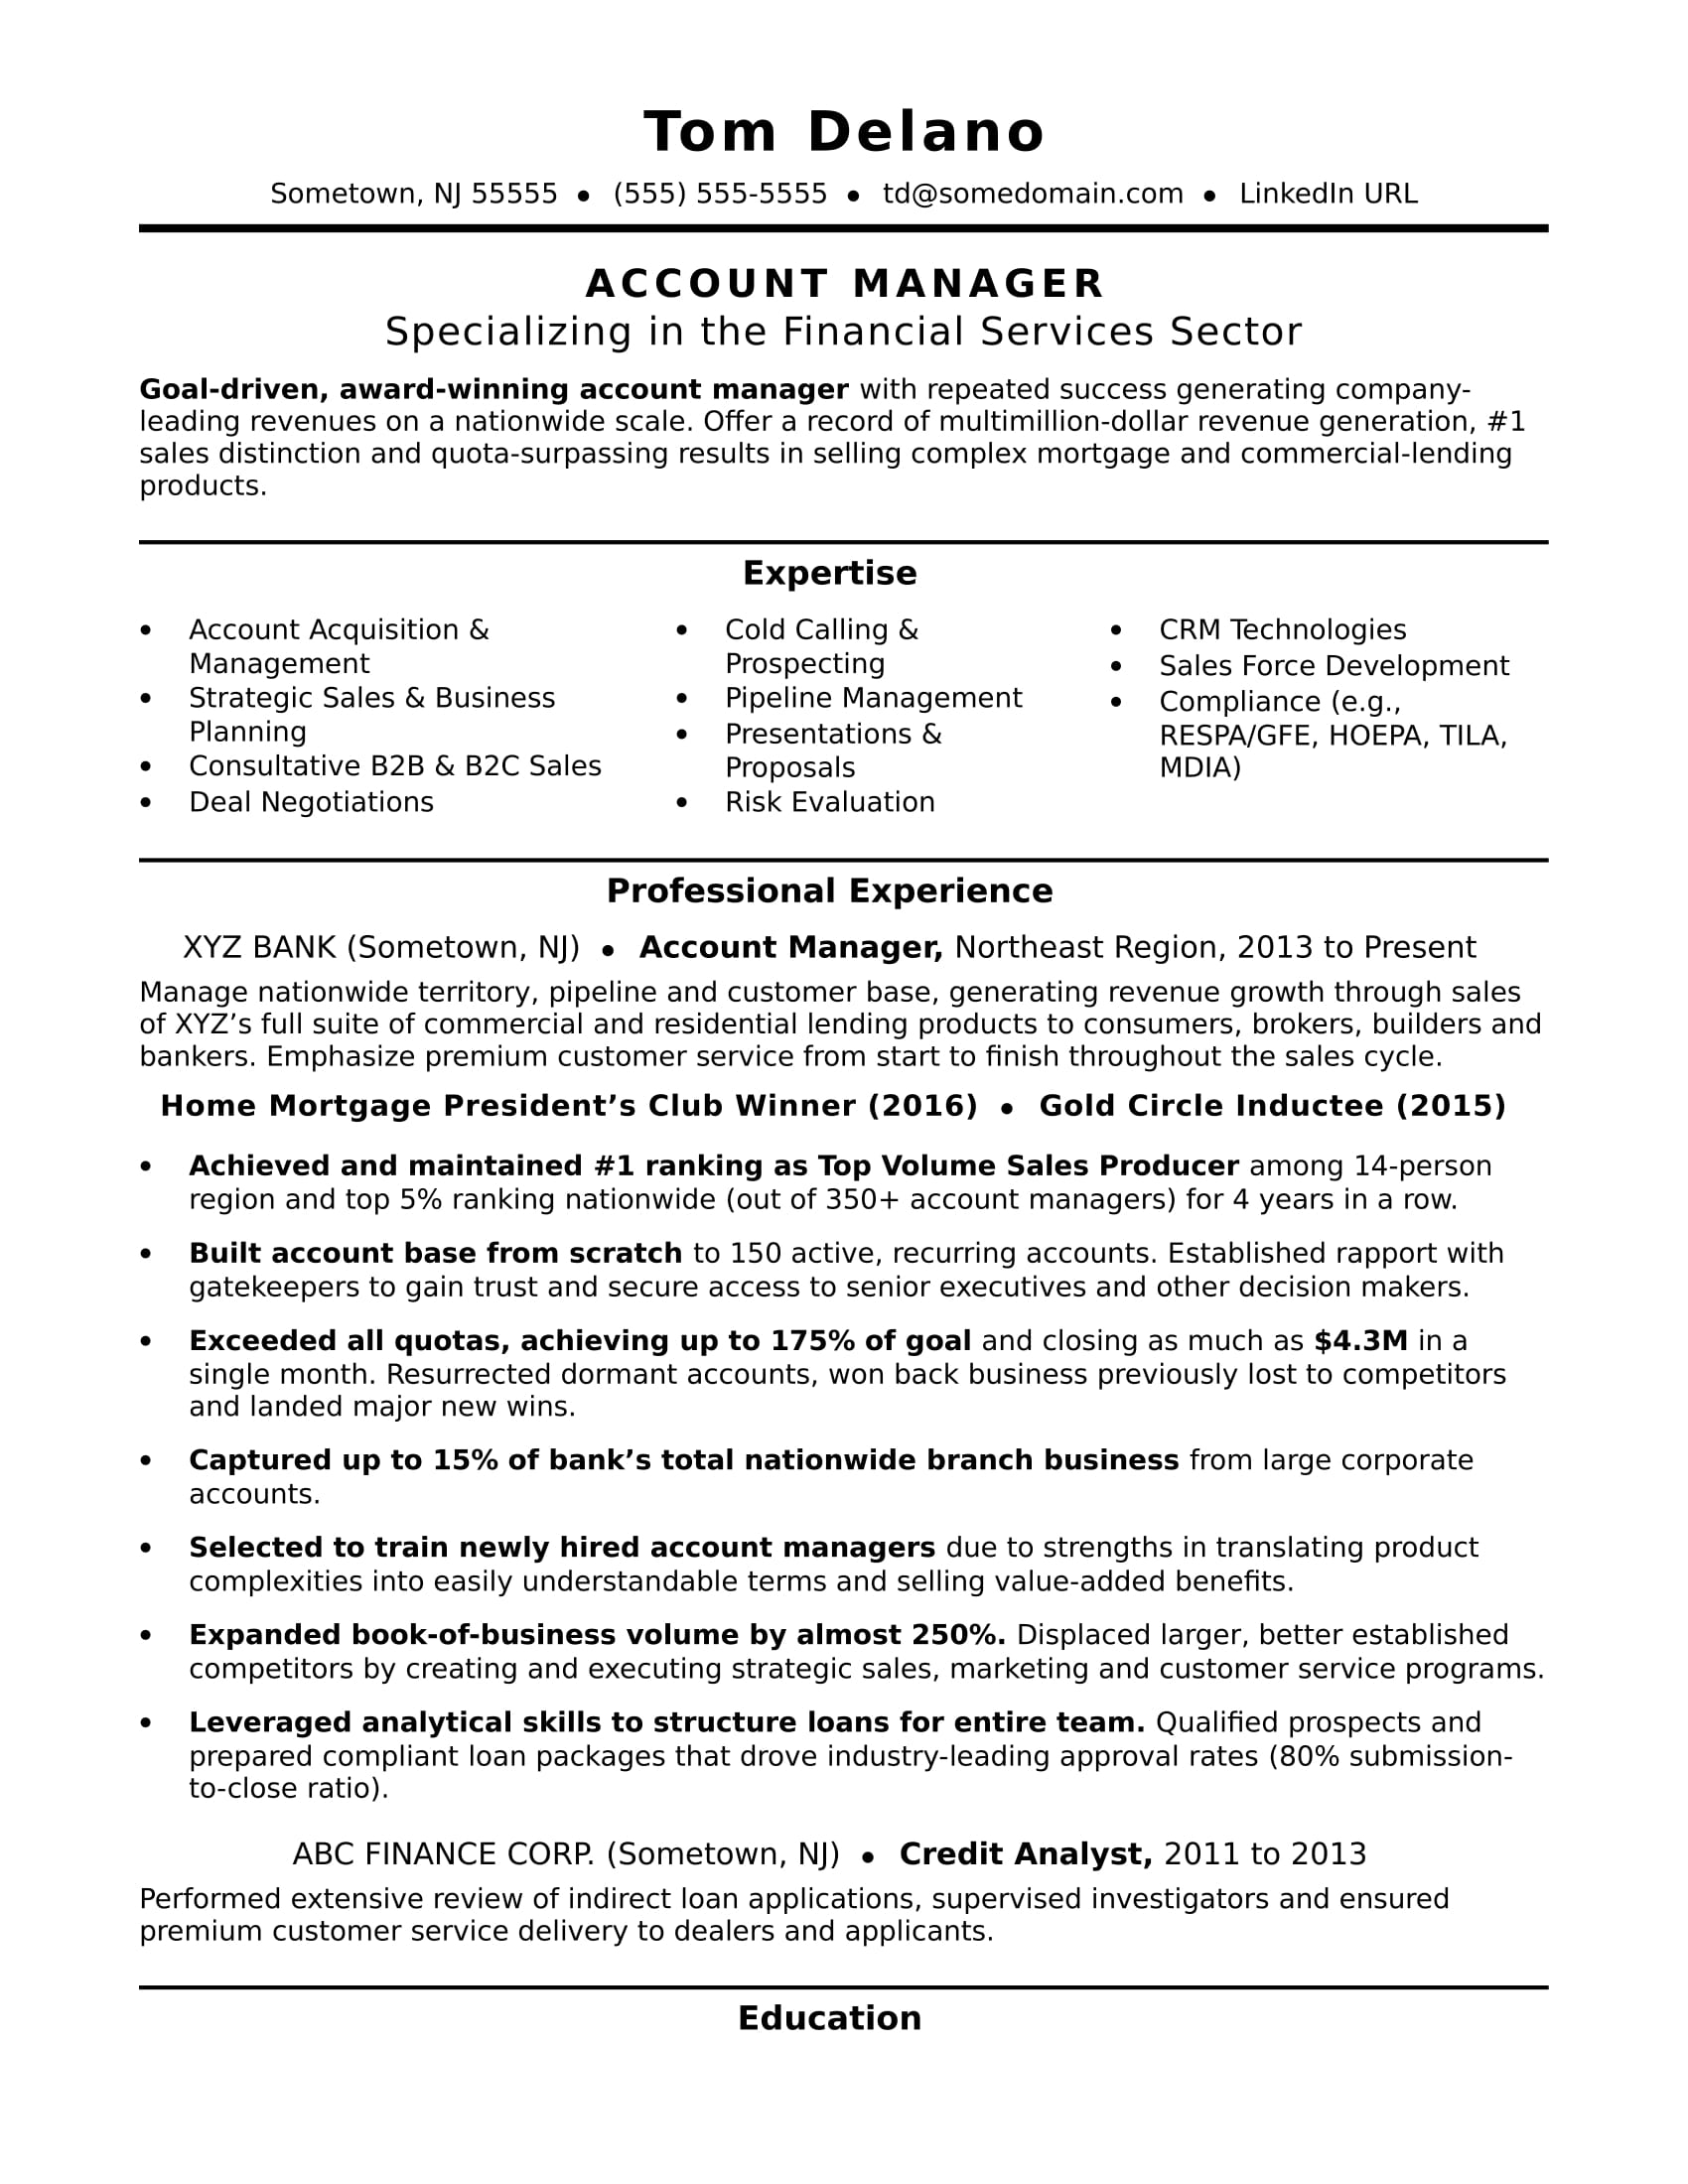 Account Manager Resume Sample  Winning Resume Samples